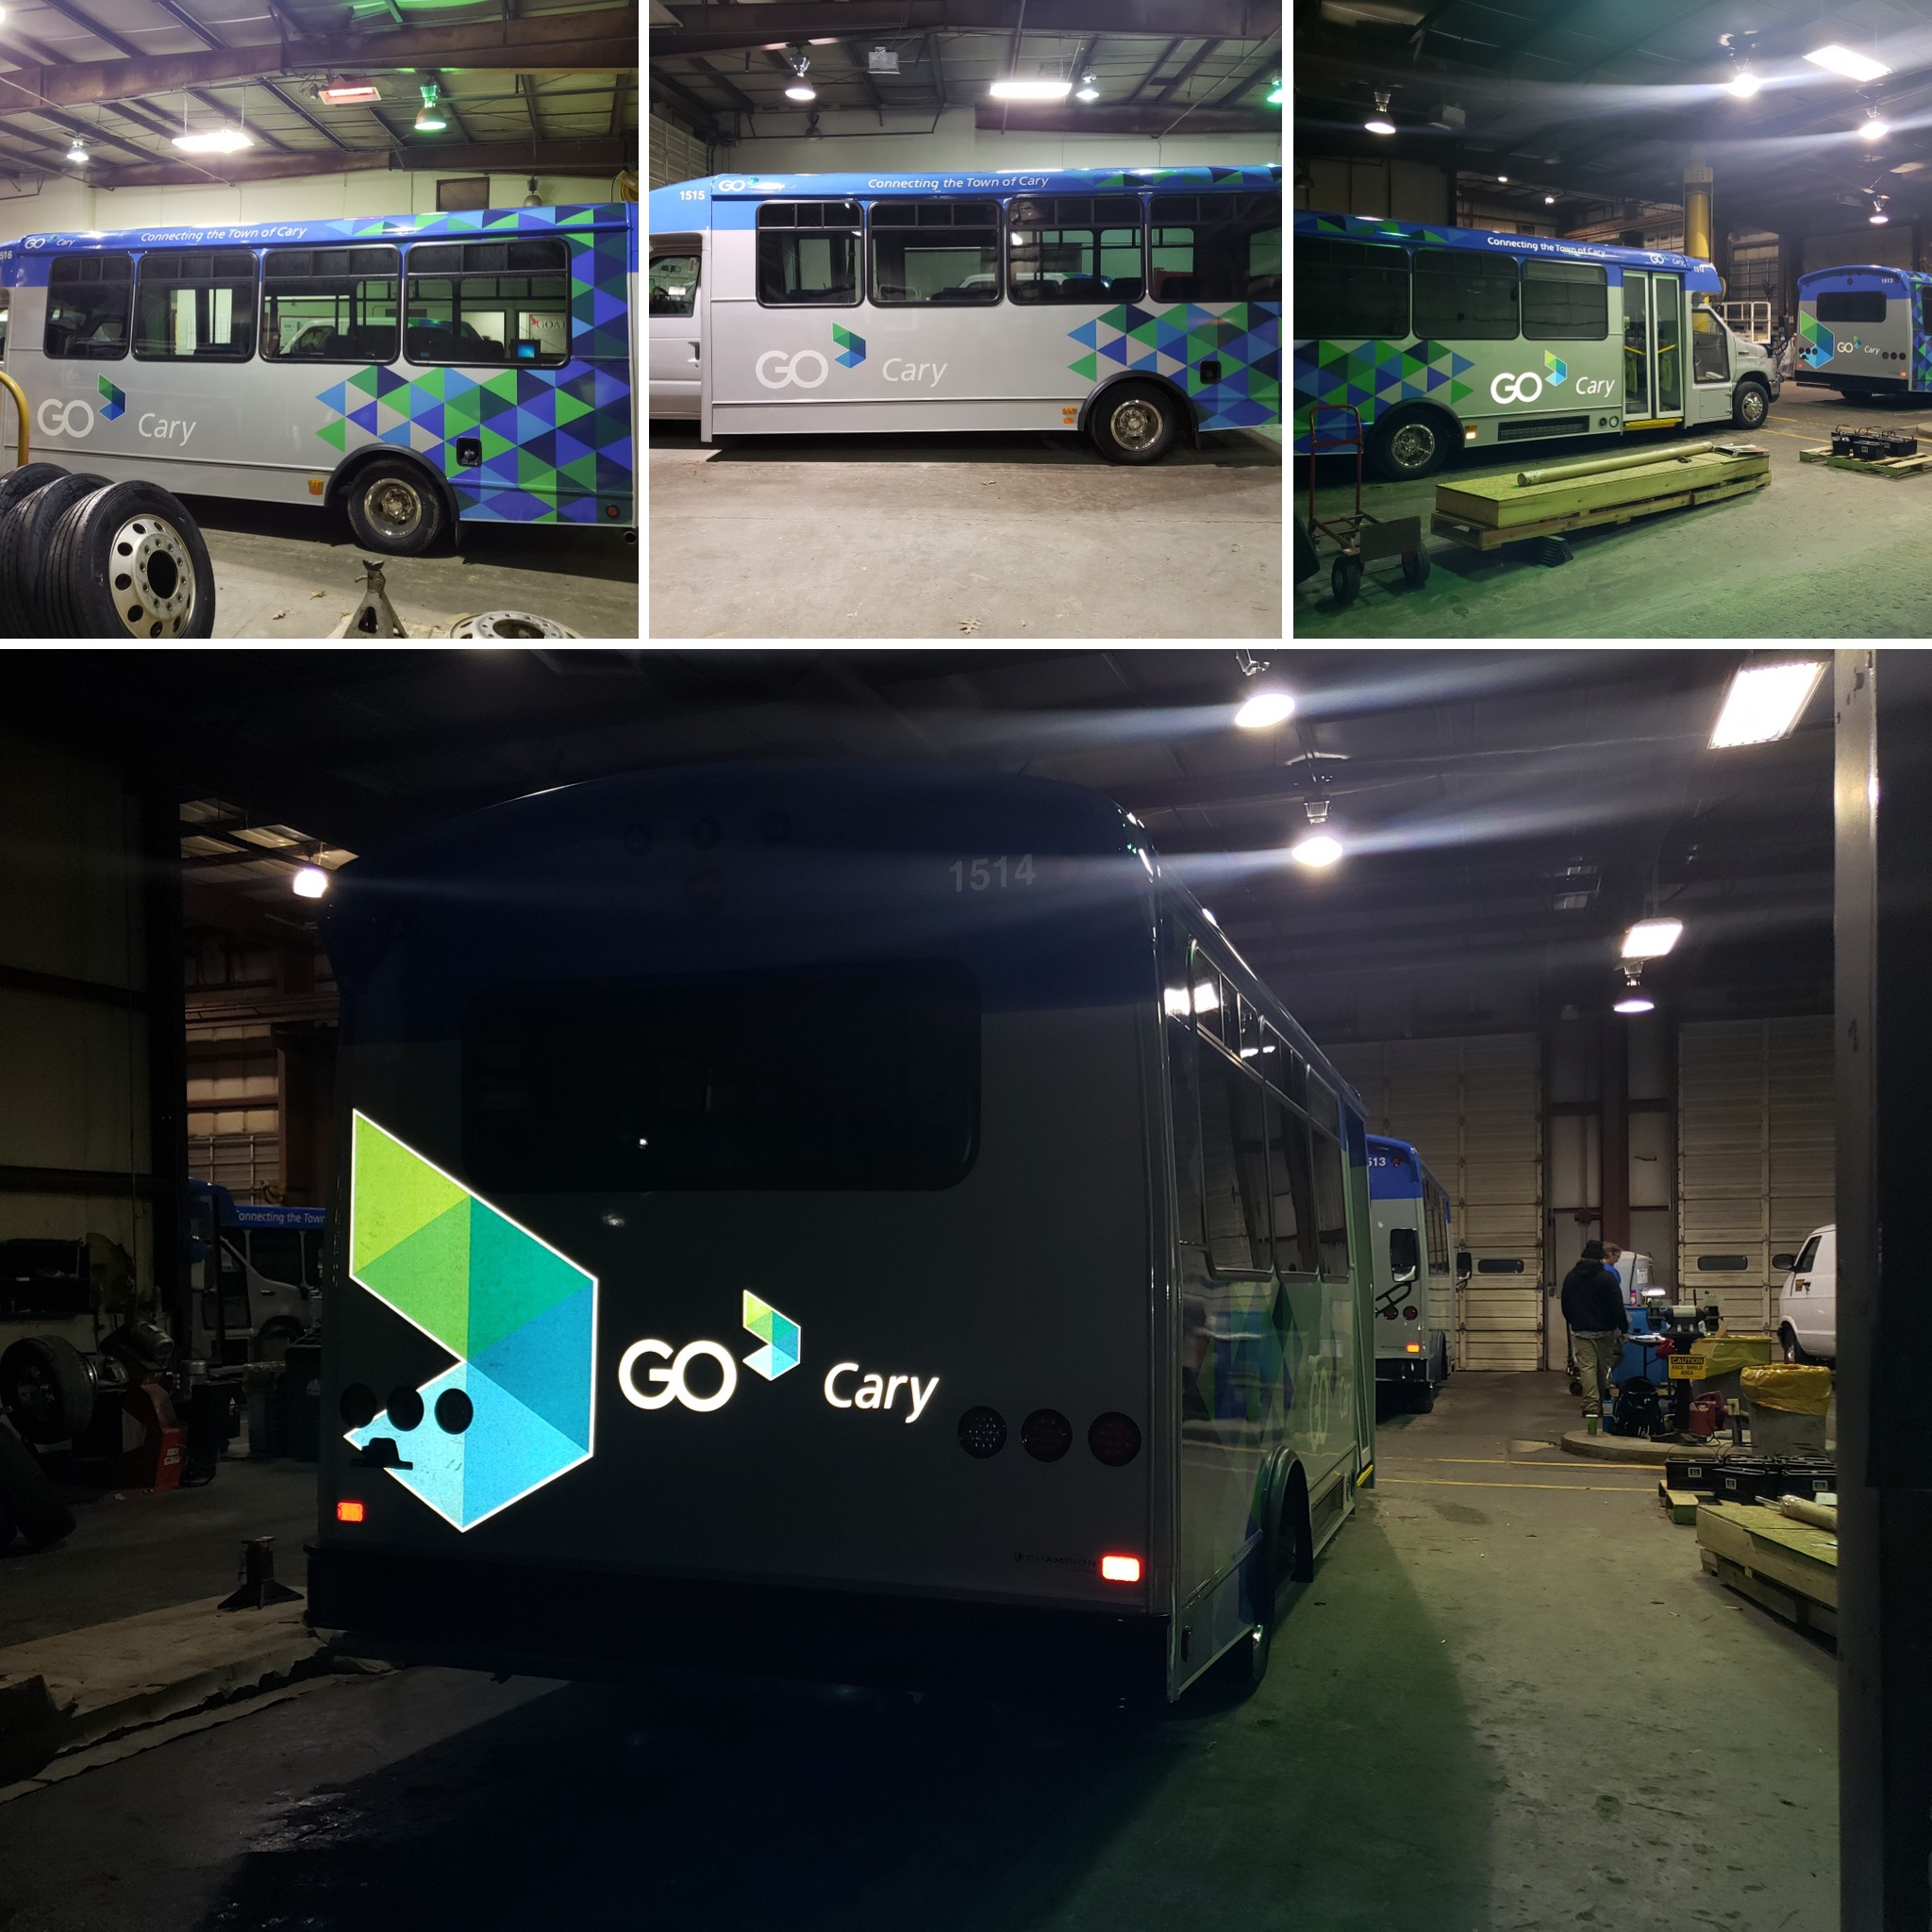 Go Cary Bus wraps Raleigh, NC